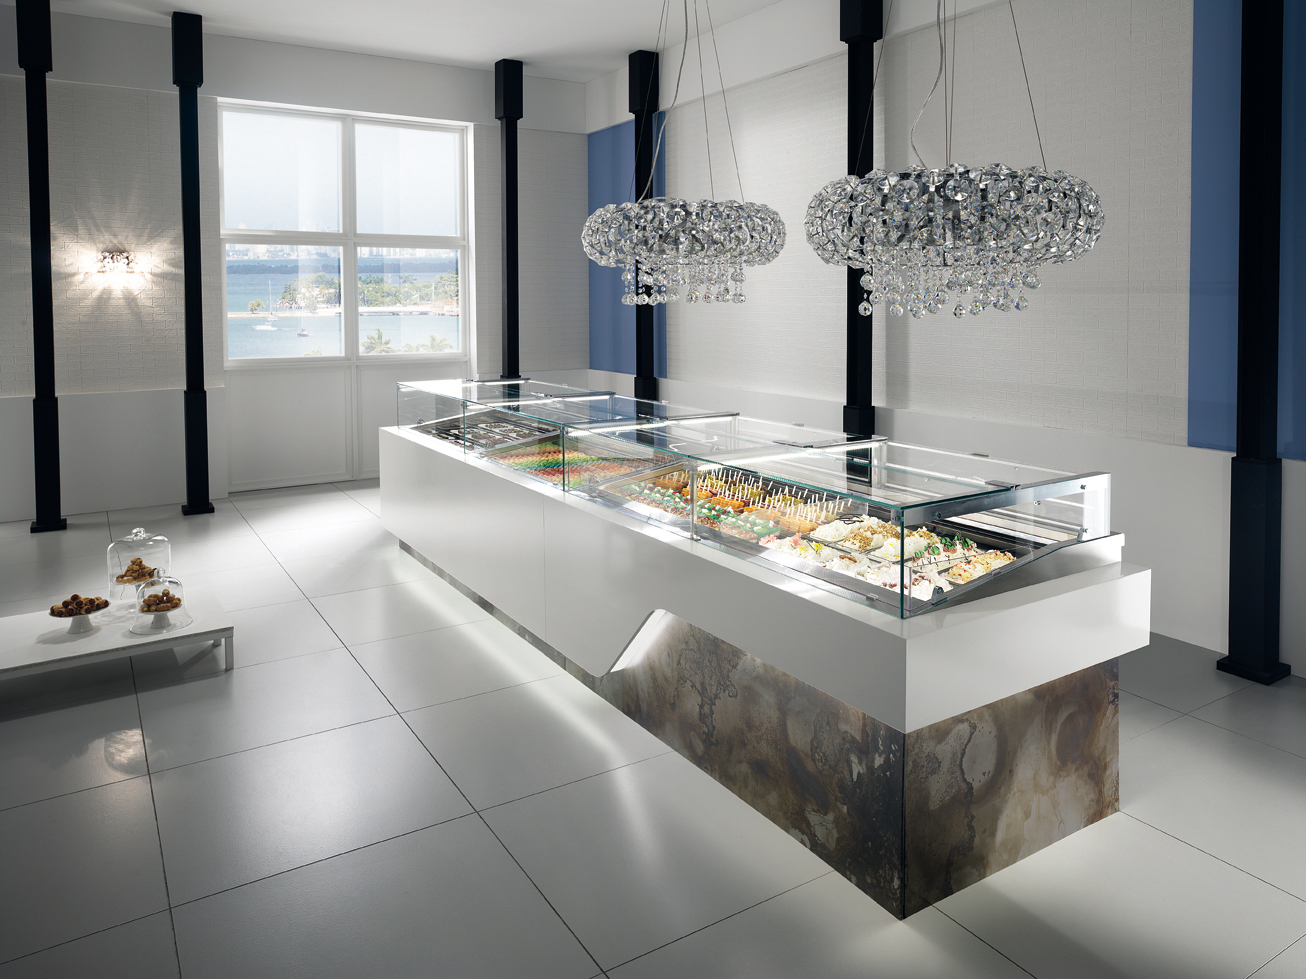 Unique Catering Products exclusive importer of CIAM refrigeration display units